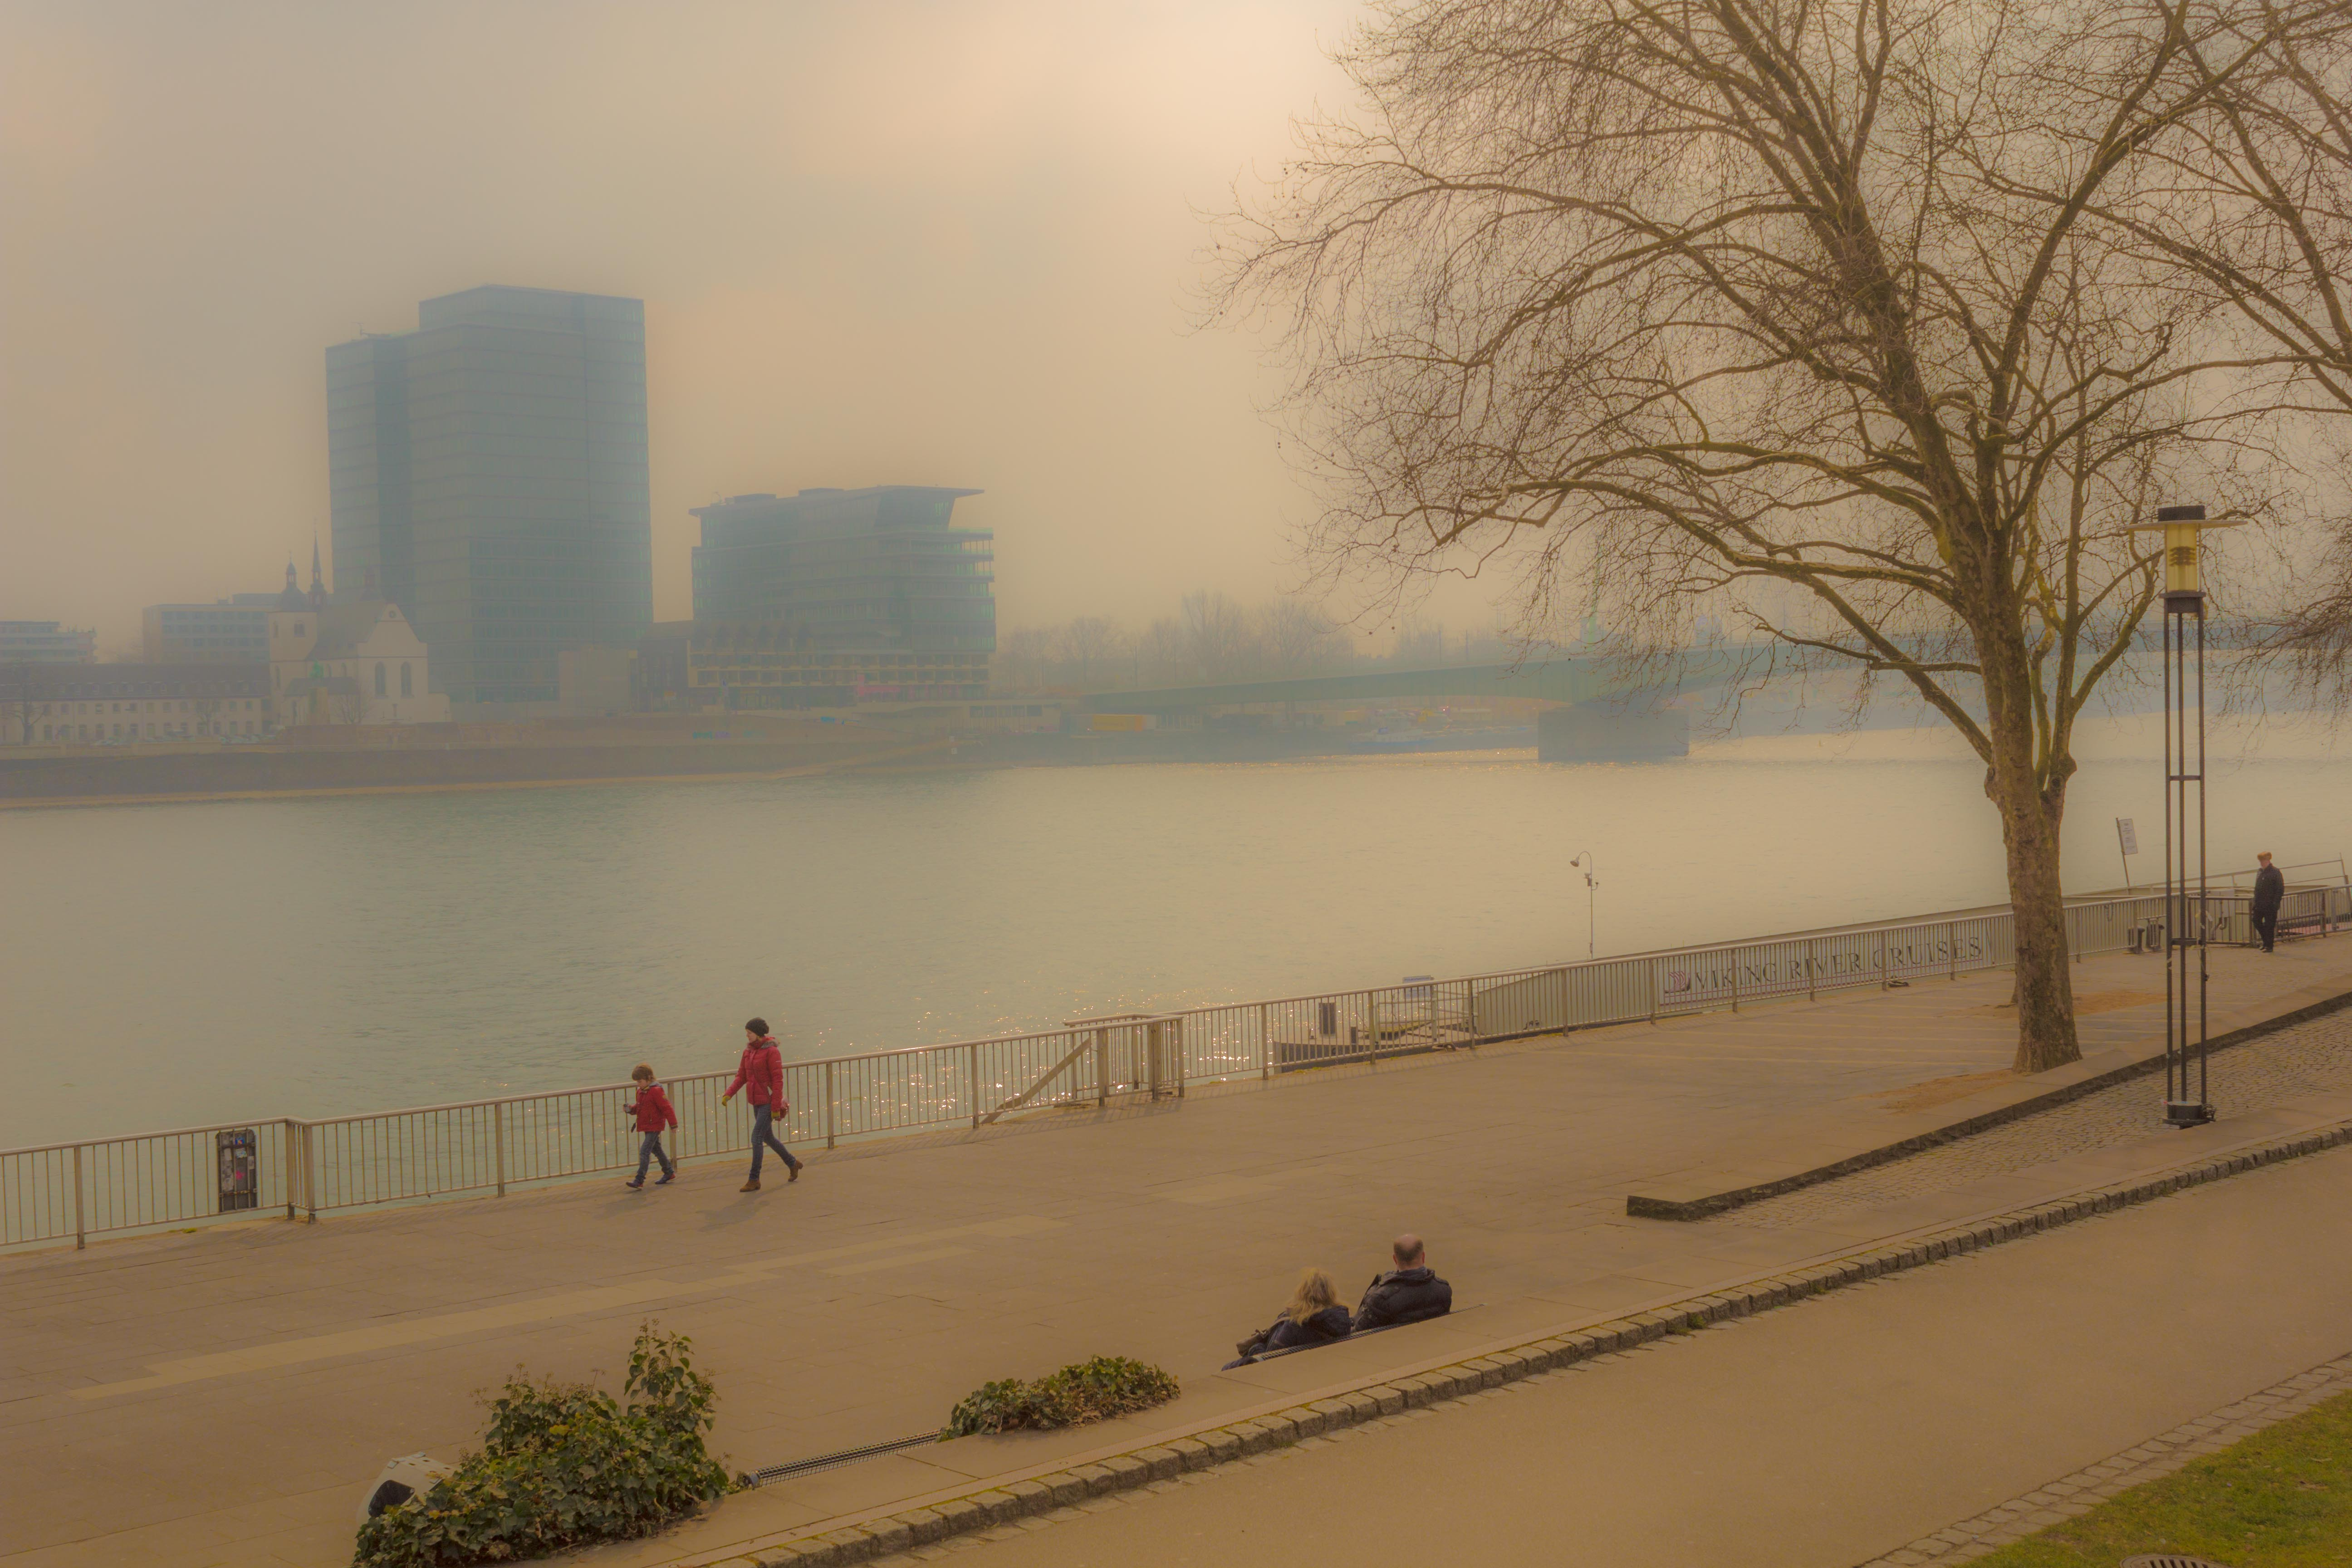 Cologne by day; a misty, washed-out view